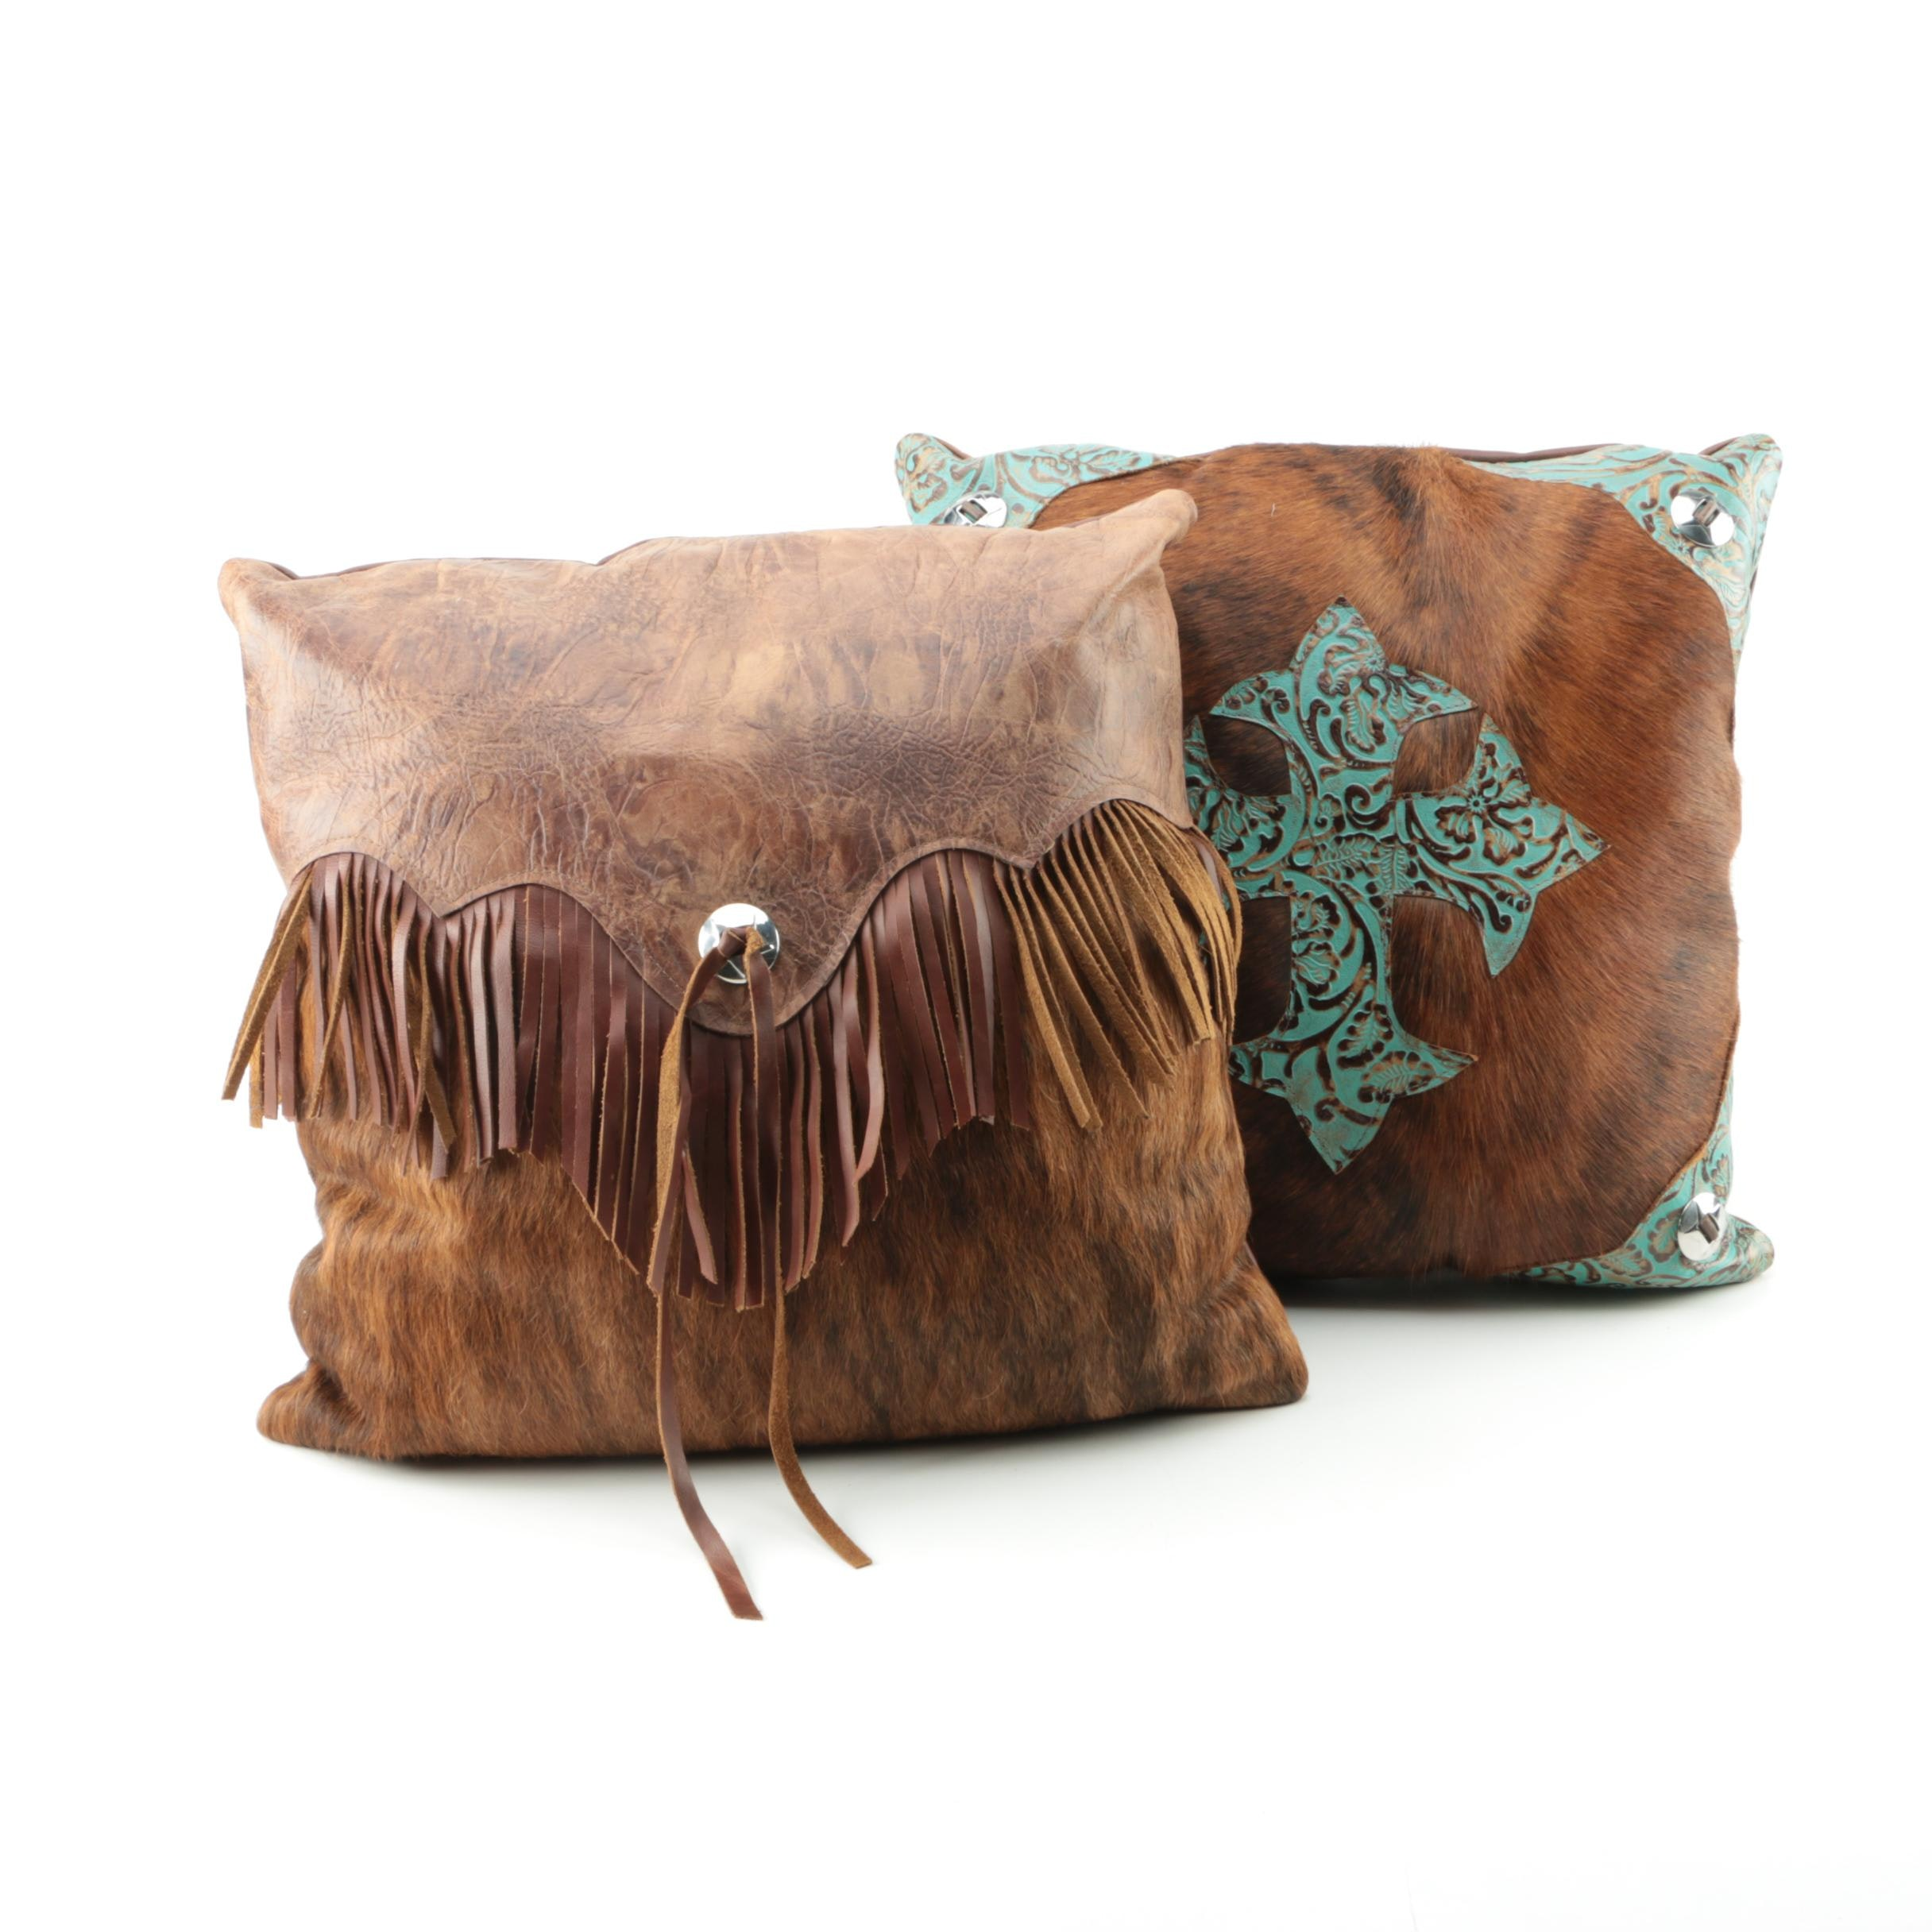 Embellished Cowhide and Leather Accent Pillows